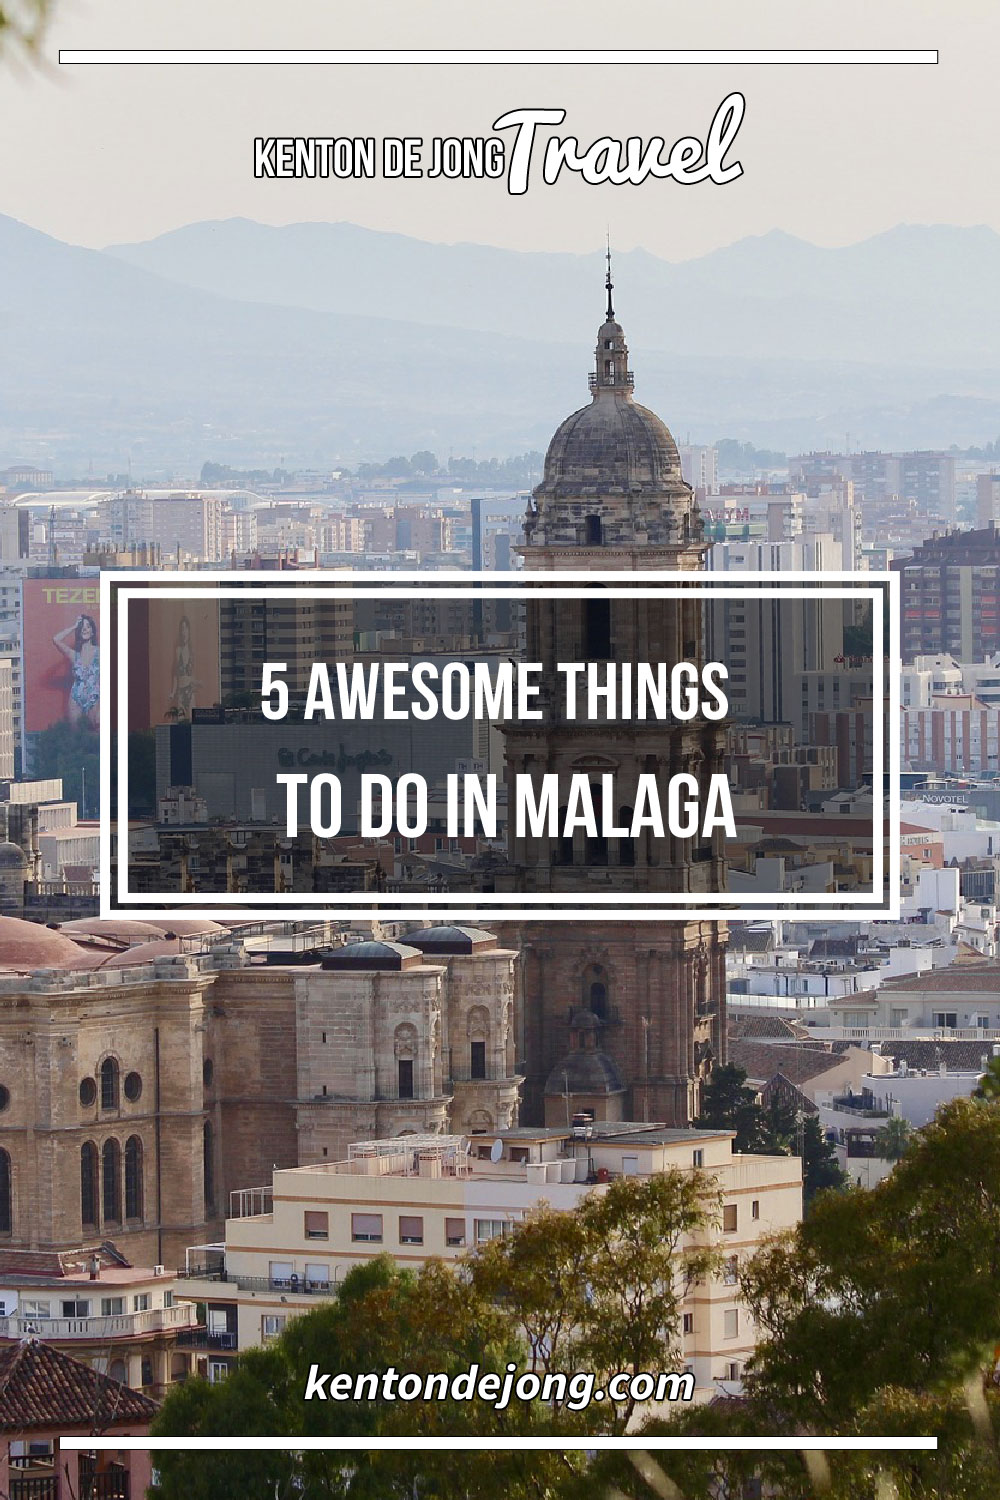 5 Awesome Things to do in Malaga